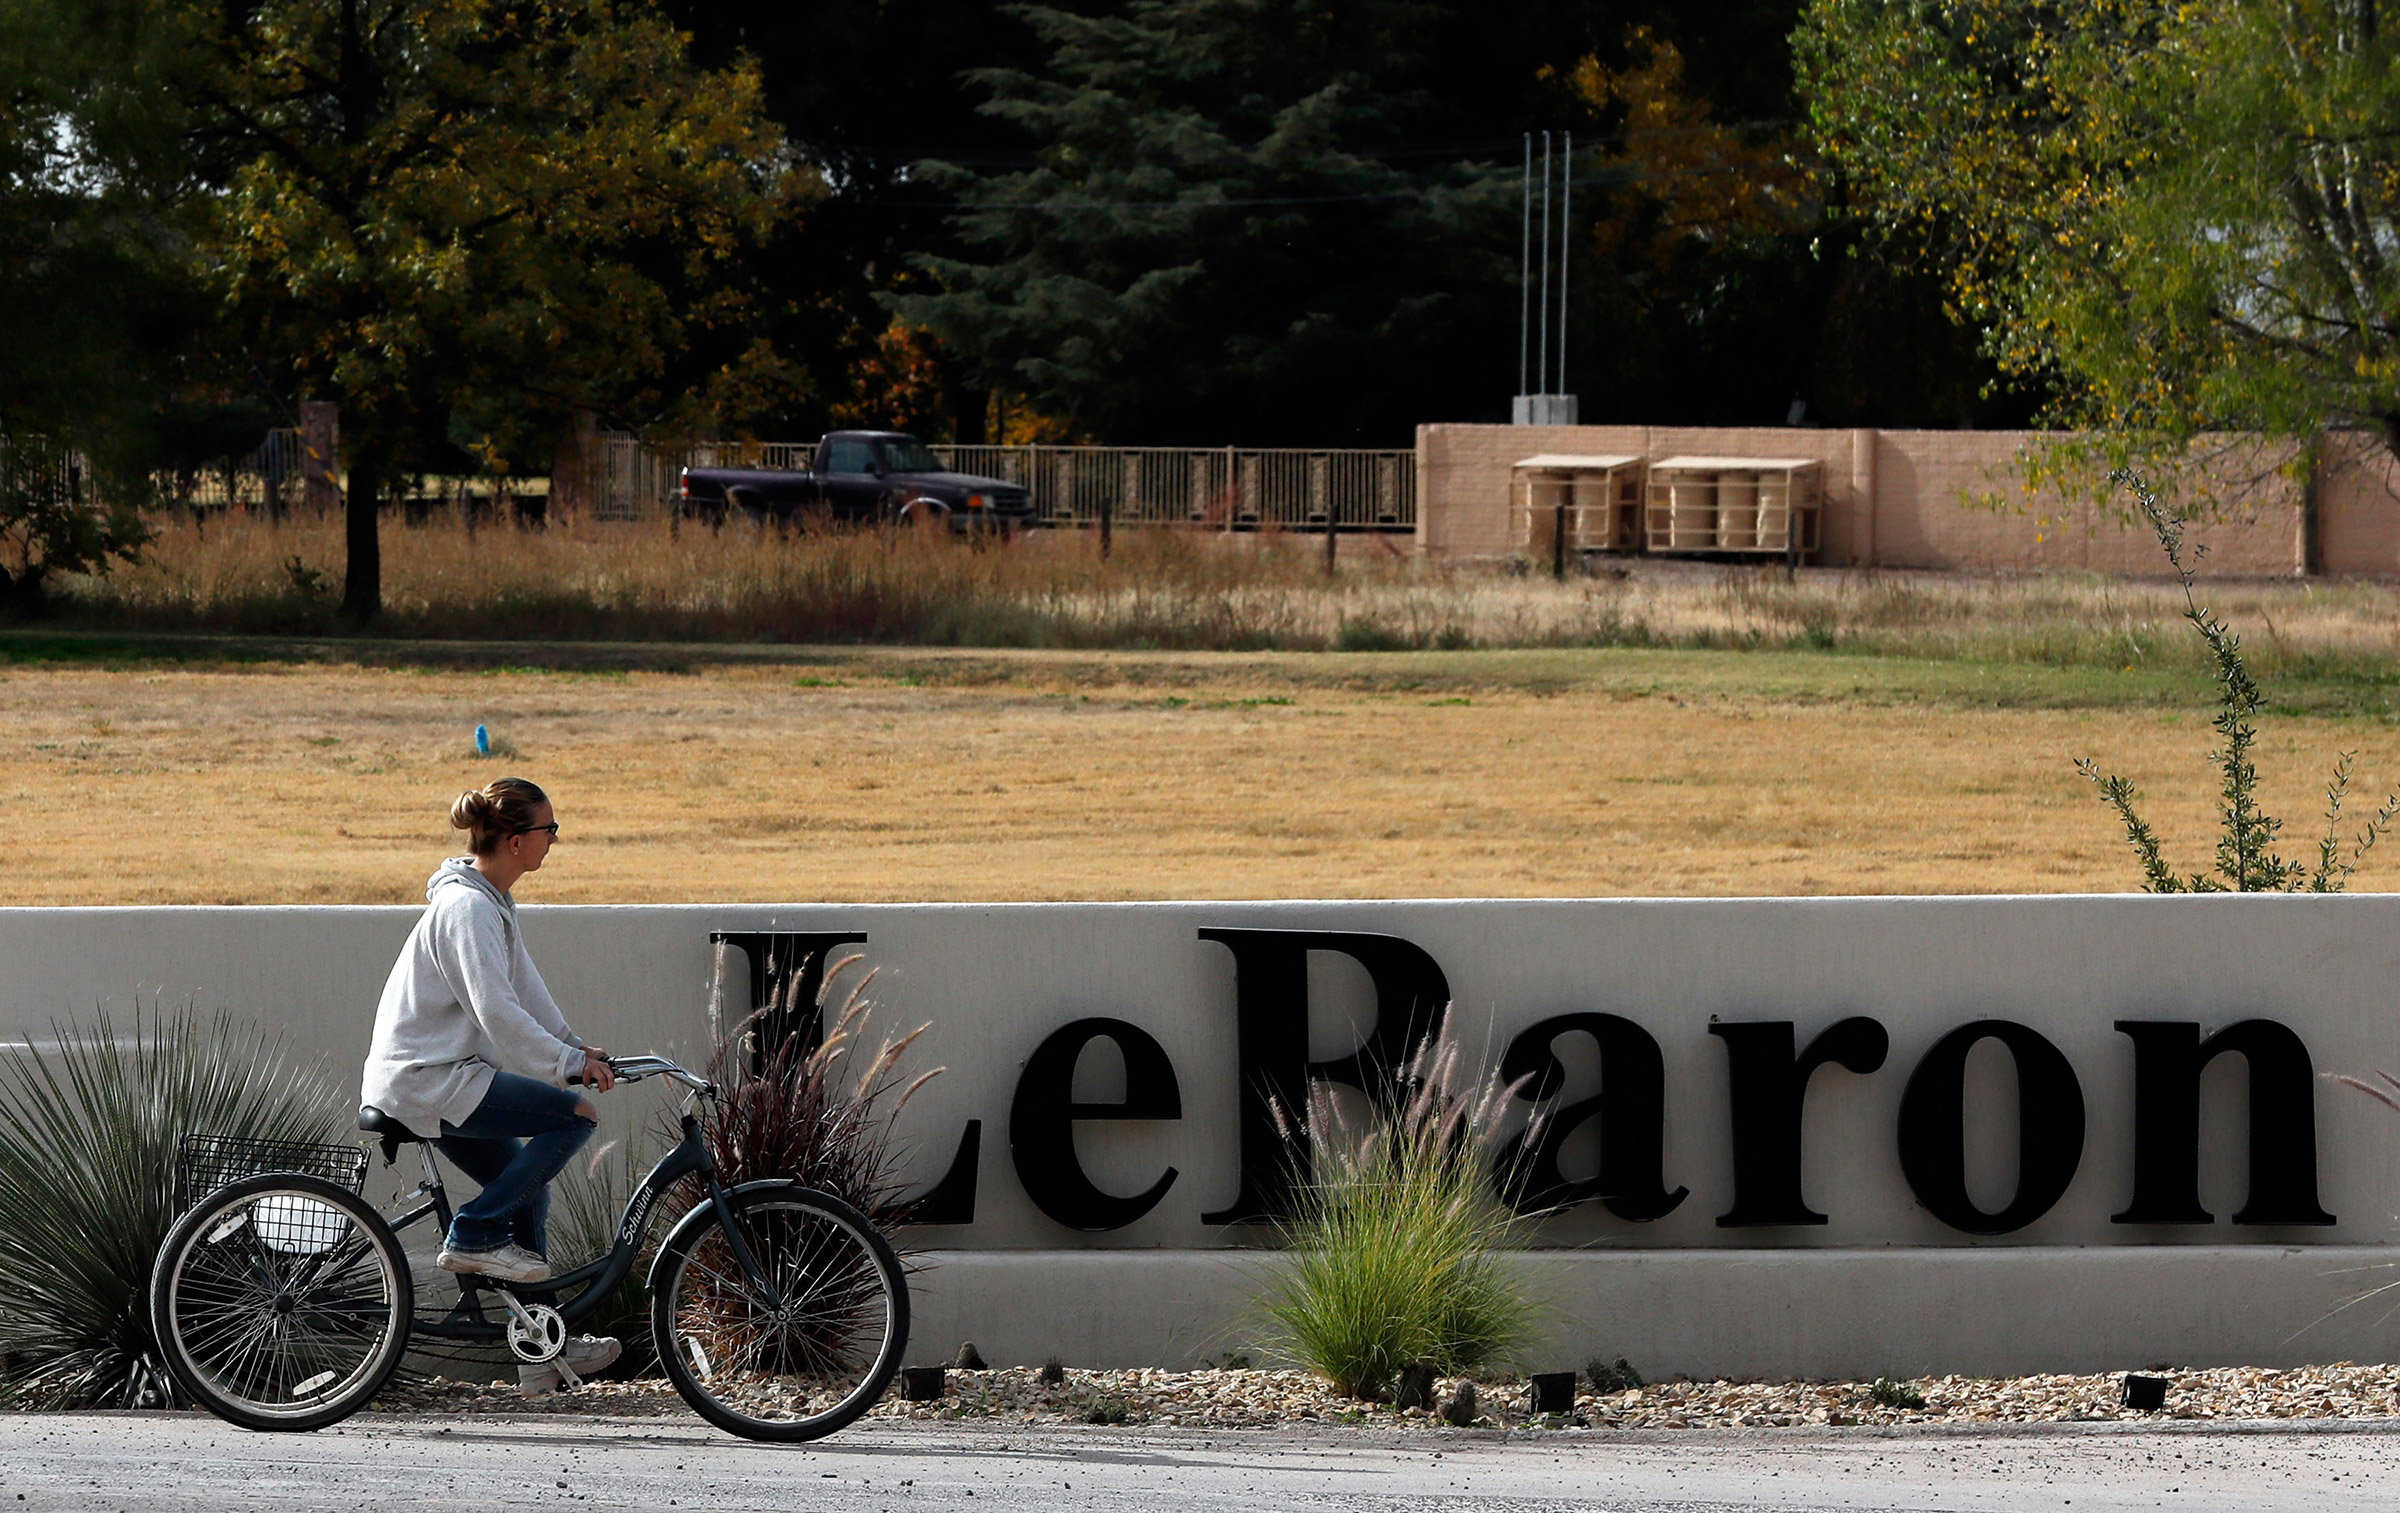 A woman cycles past a sign announcing the Colonia LeBaron, a community settled by members of the extended LeBaron family in Chihuahua state in northern Mexico, Nov. 6, 2019.